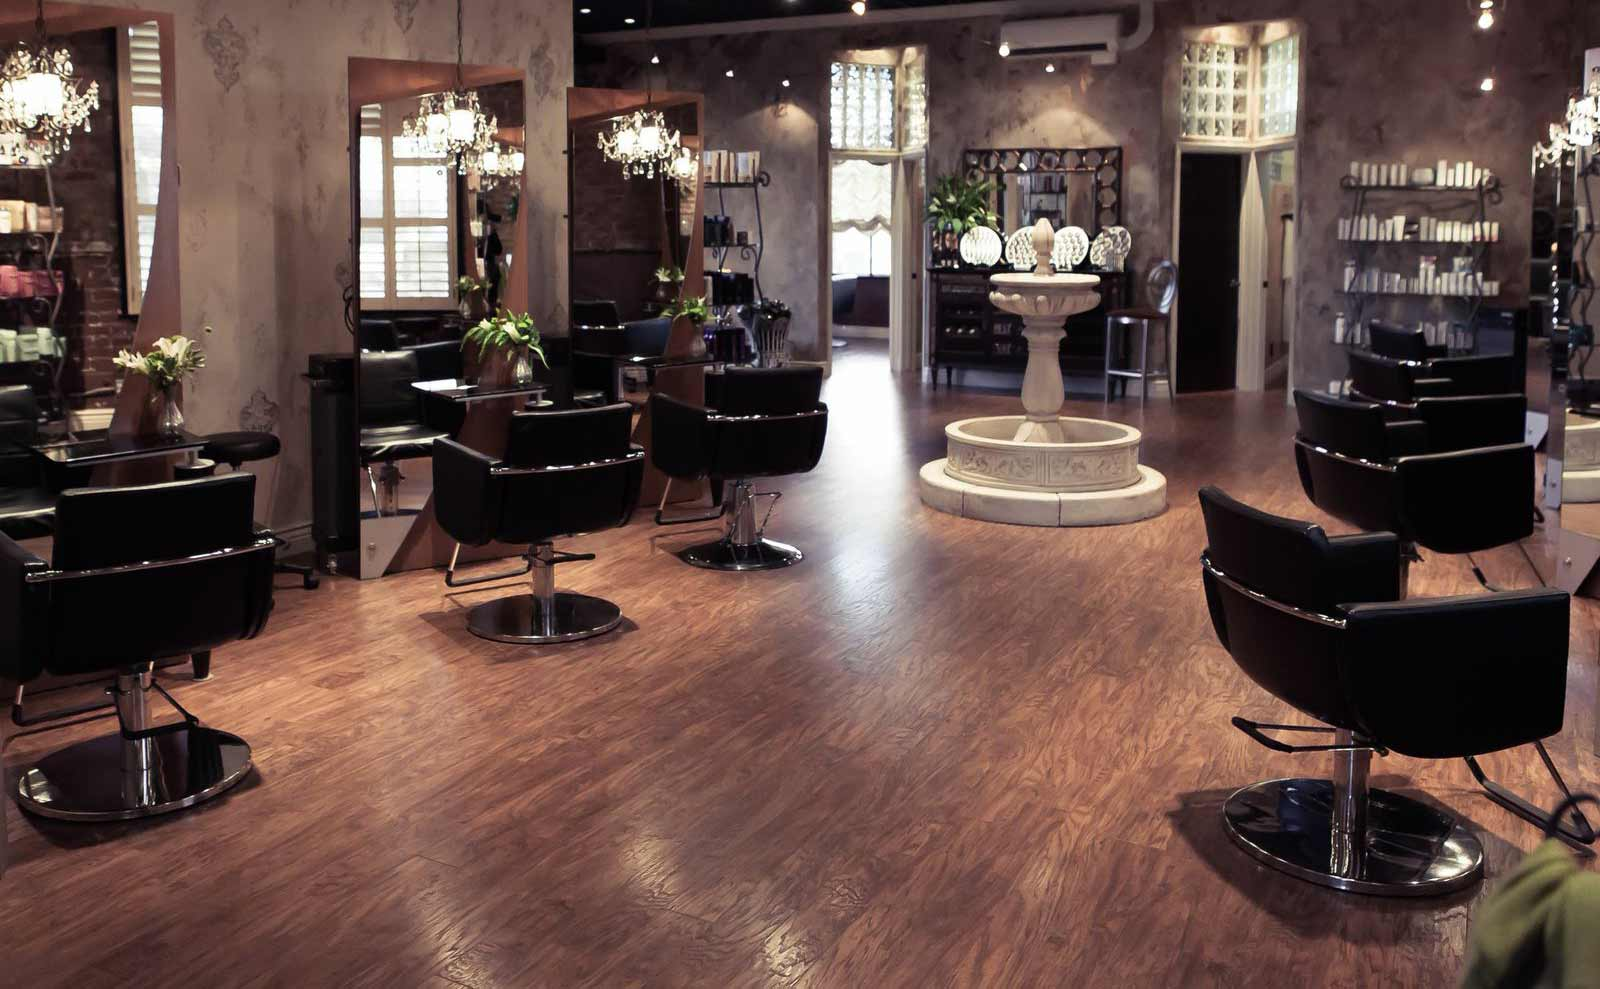 Top 10 hair salons in penang tallypress - Salons fotos ...